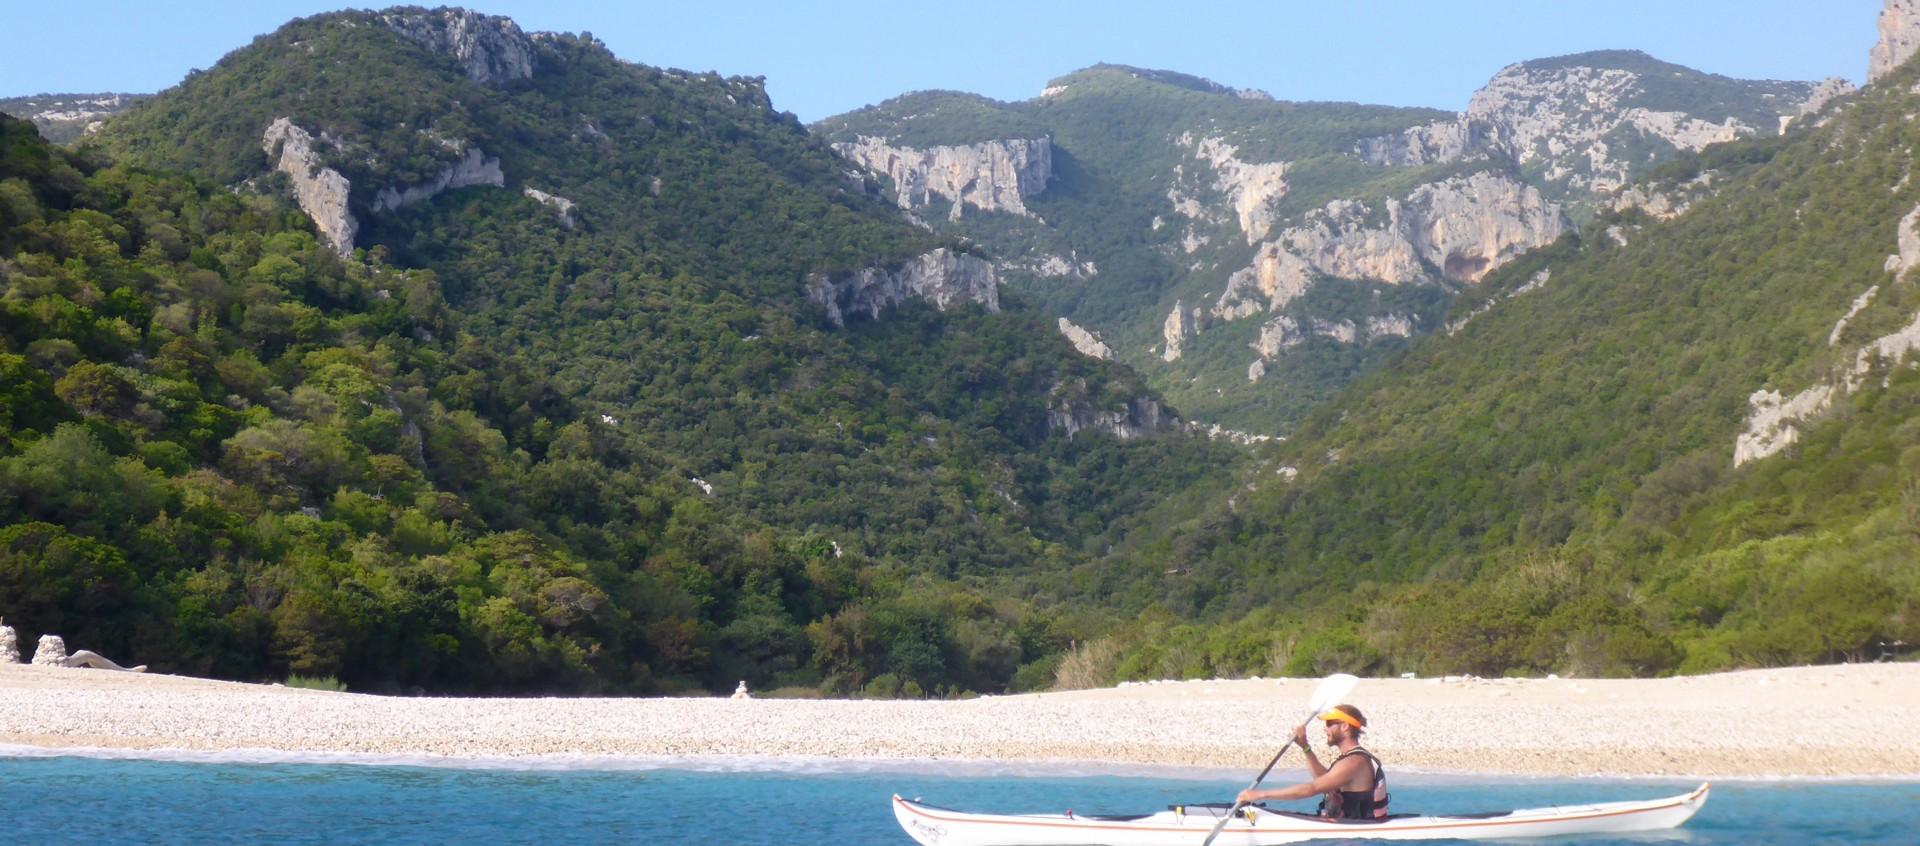 Cala Sisine MAIN HP.jpg - Sardinia - Daily Kayaking Trips - Kayaking